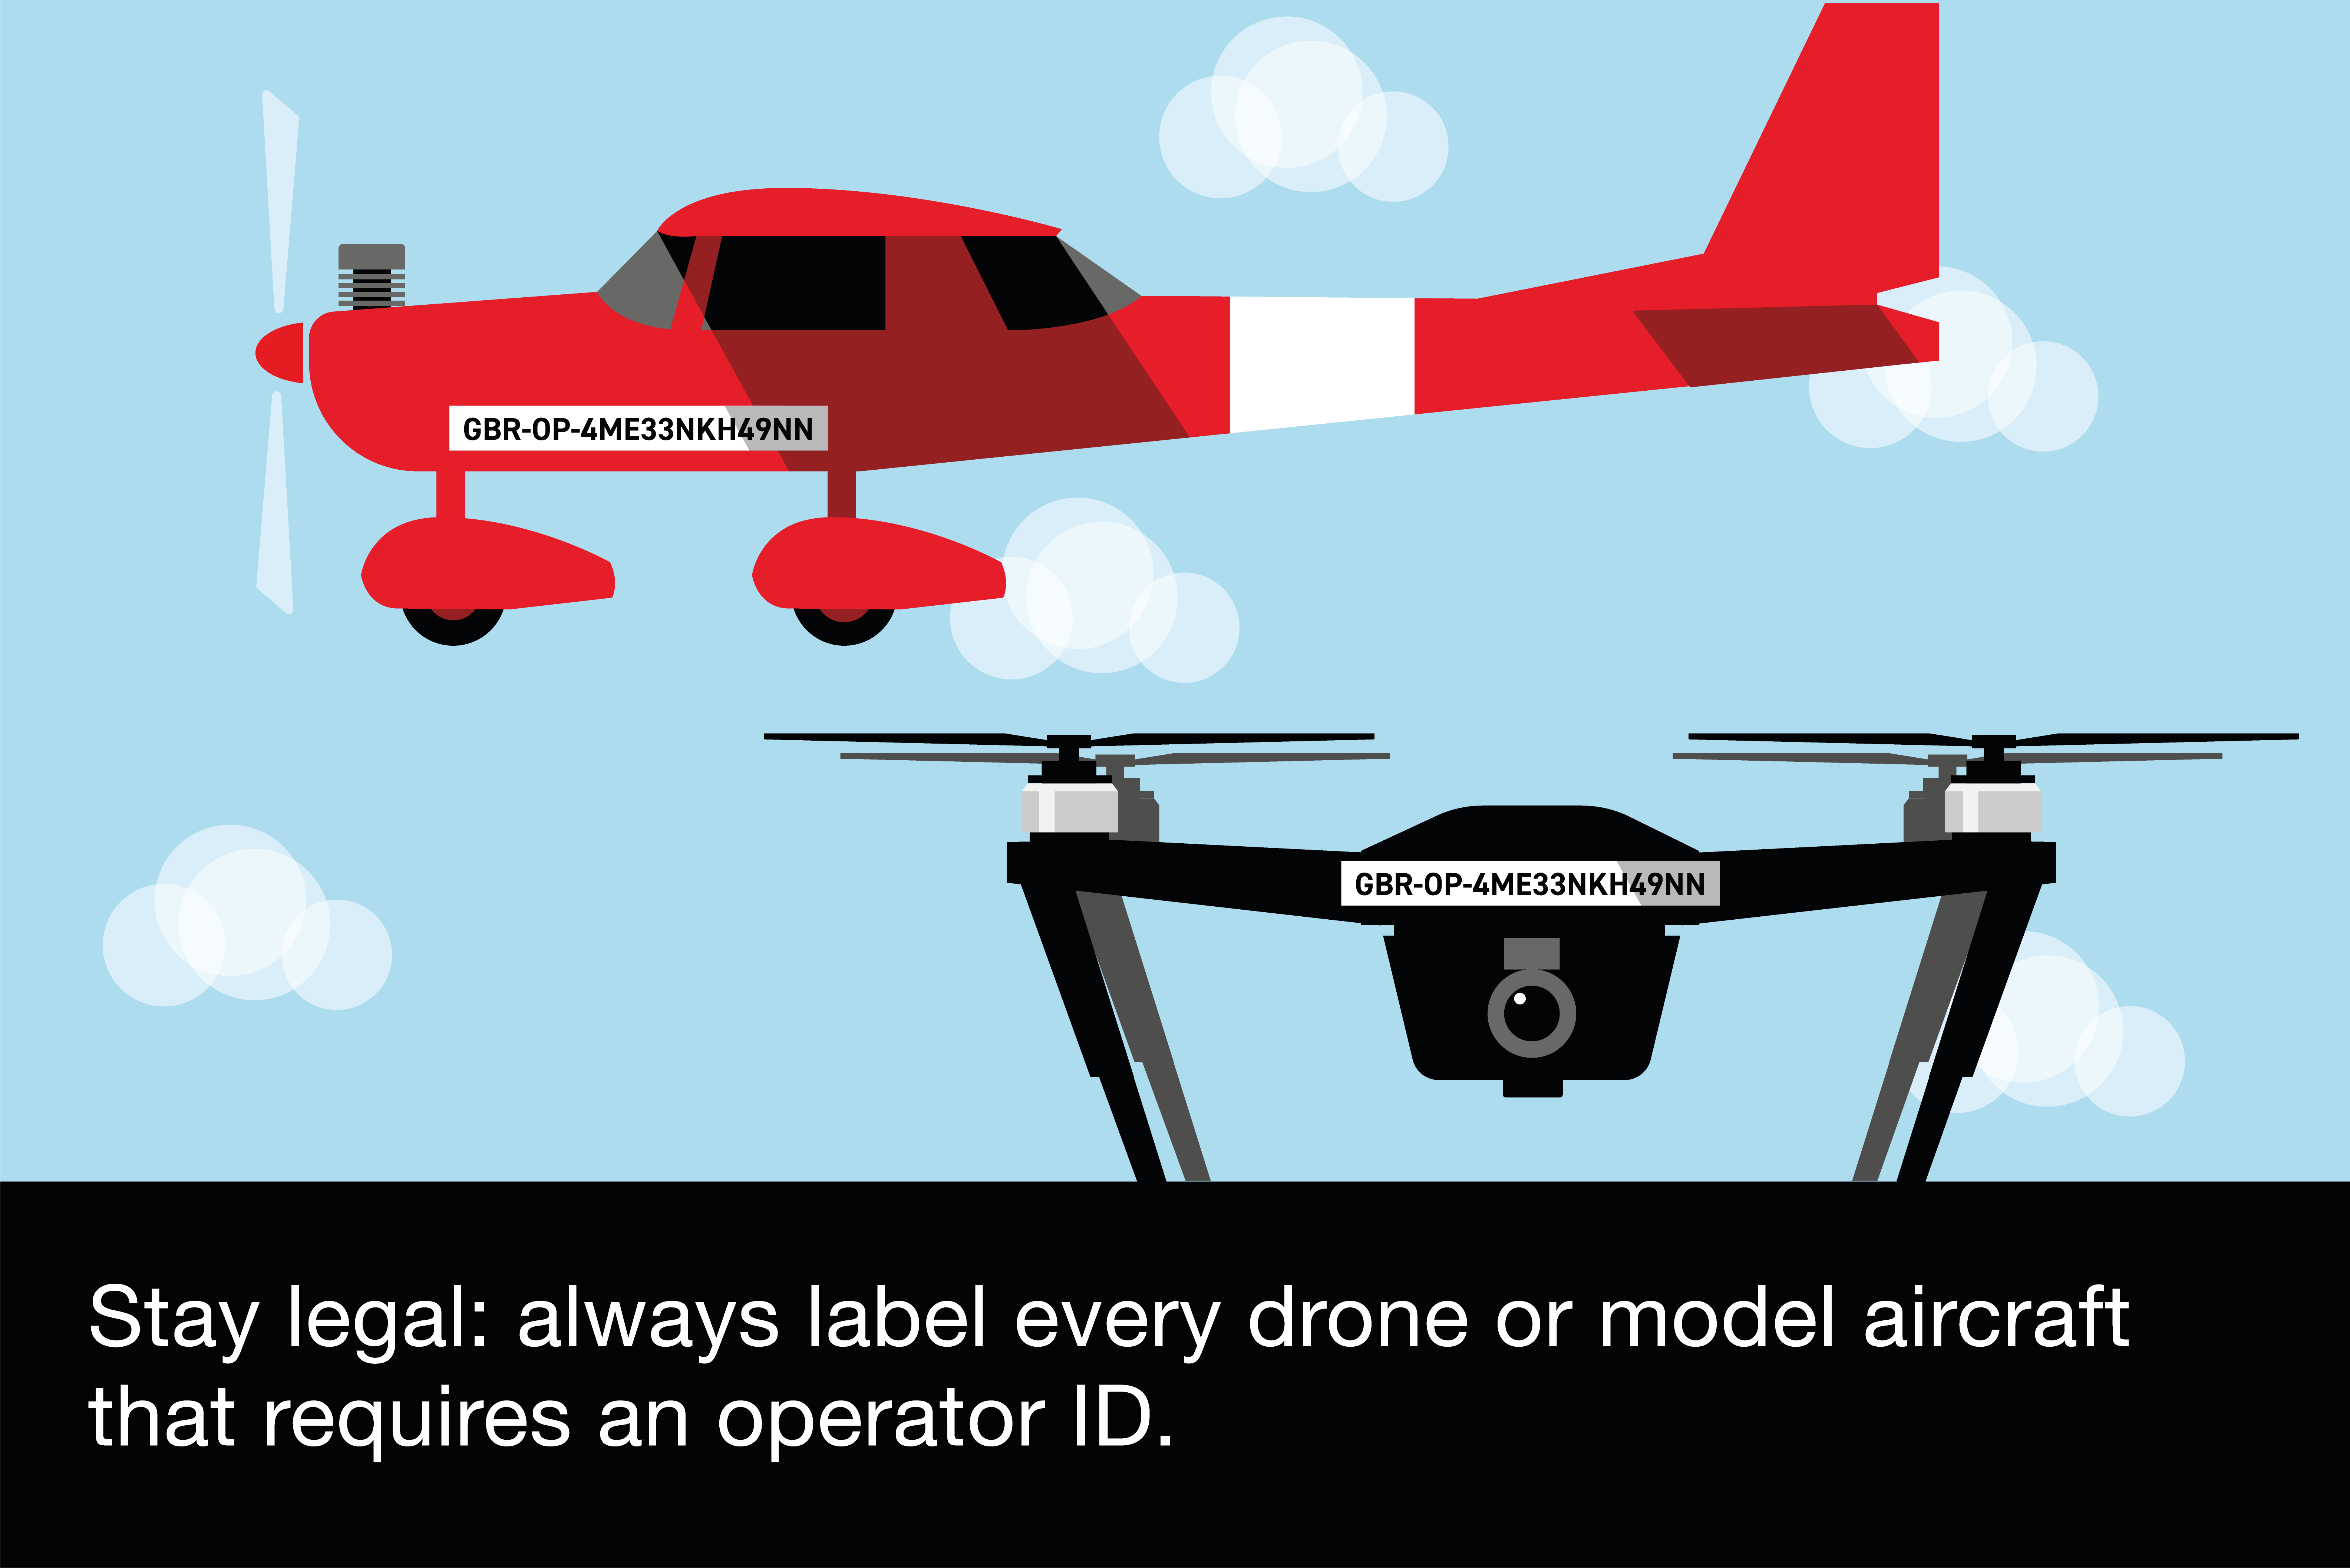 Stay legal: always label every drone or model aircraft that requires an operator ID.